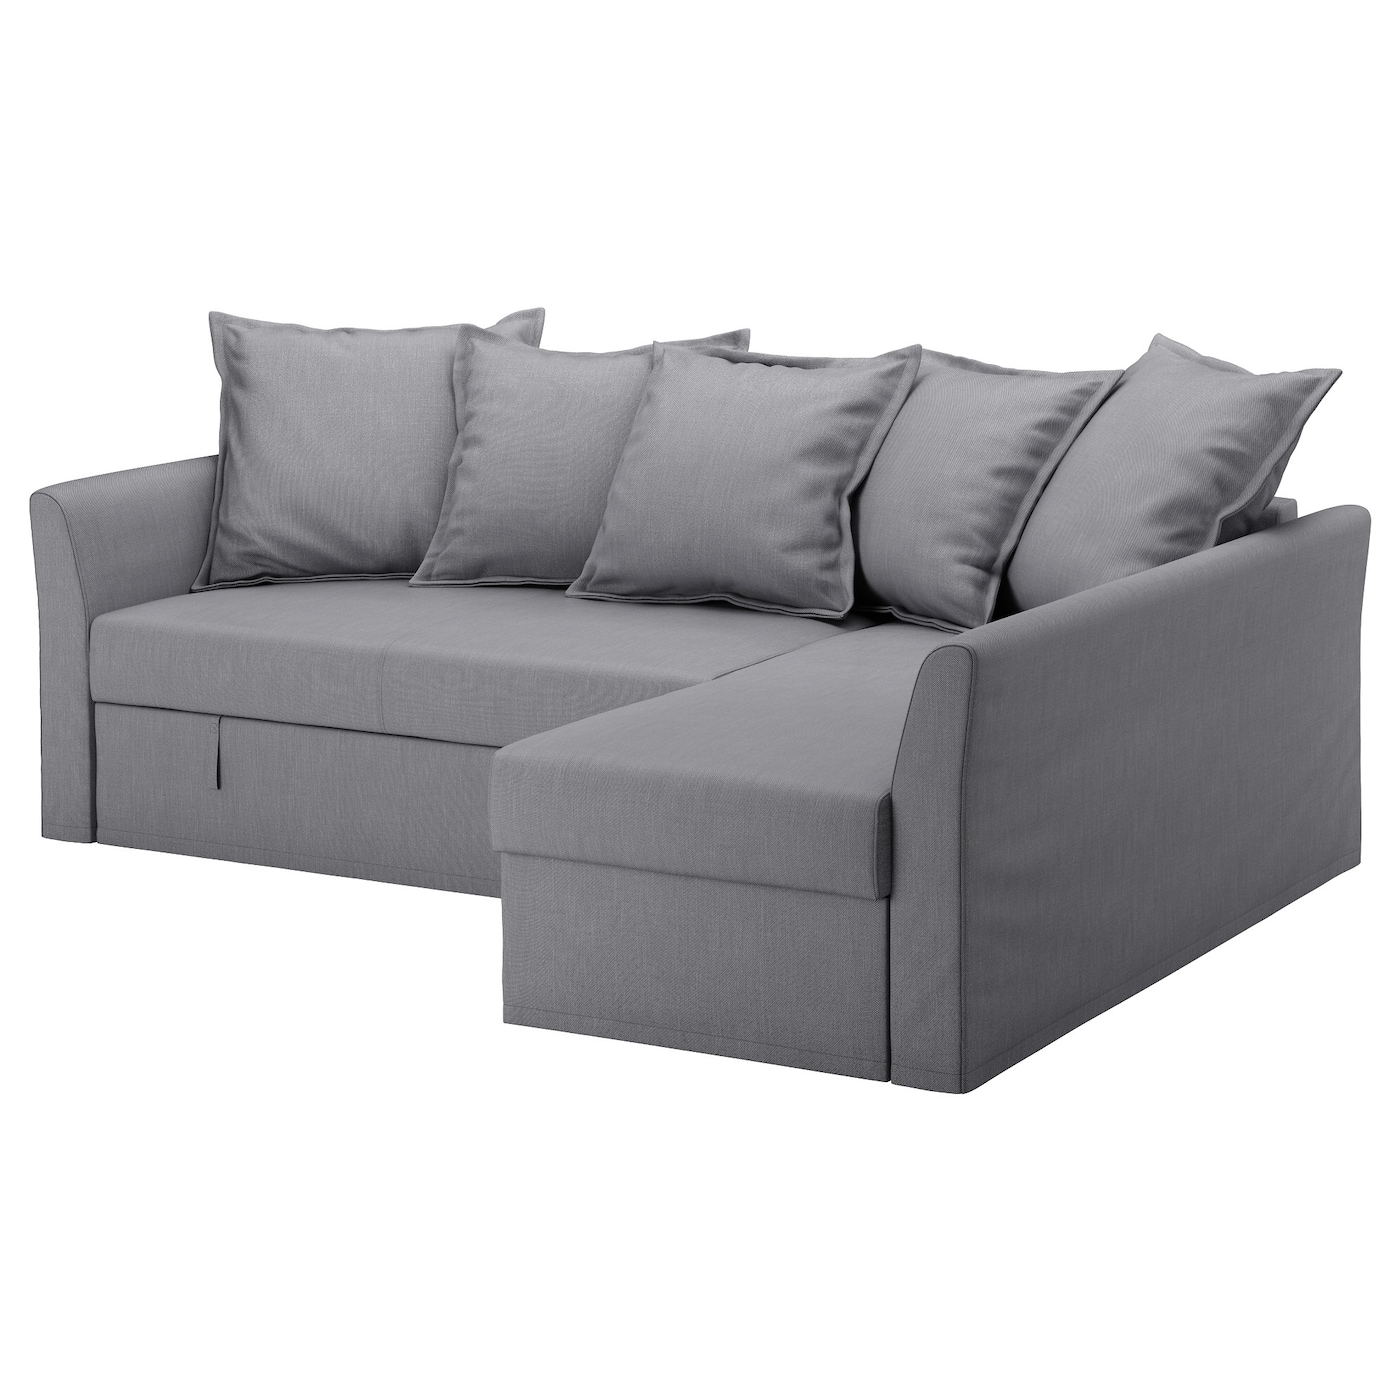 Ikea Holmsund Cover For Corner Sofa Bed Readily Converts Into A